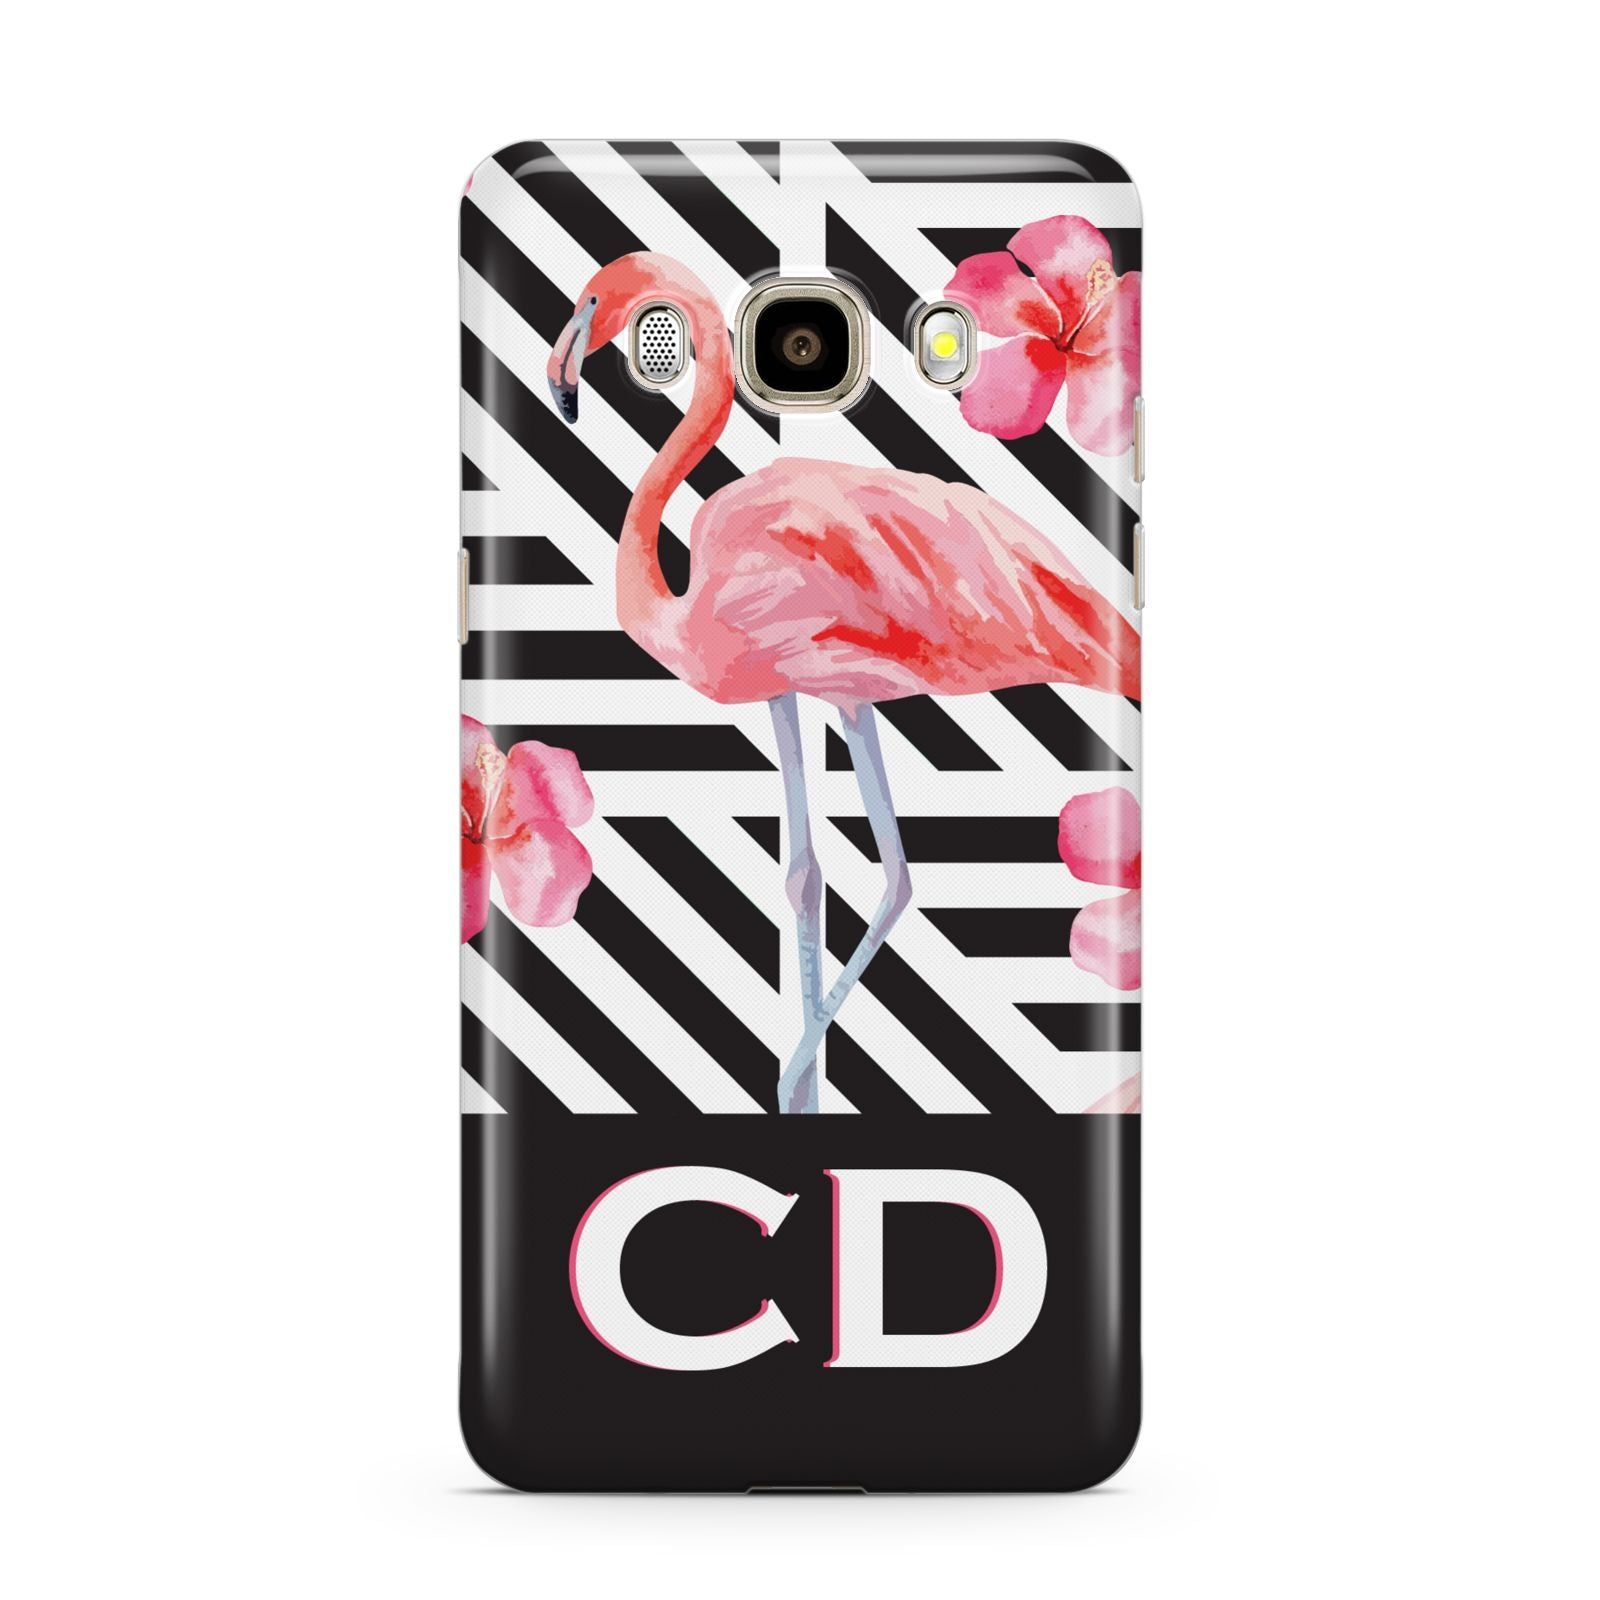 Flamingo Black Geometric Samsung Galaxy J7 2016 Case on gold phone